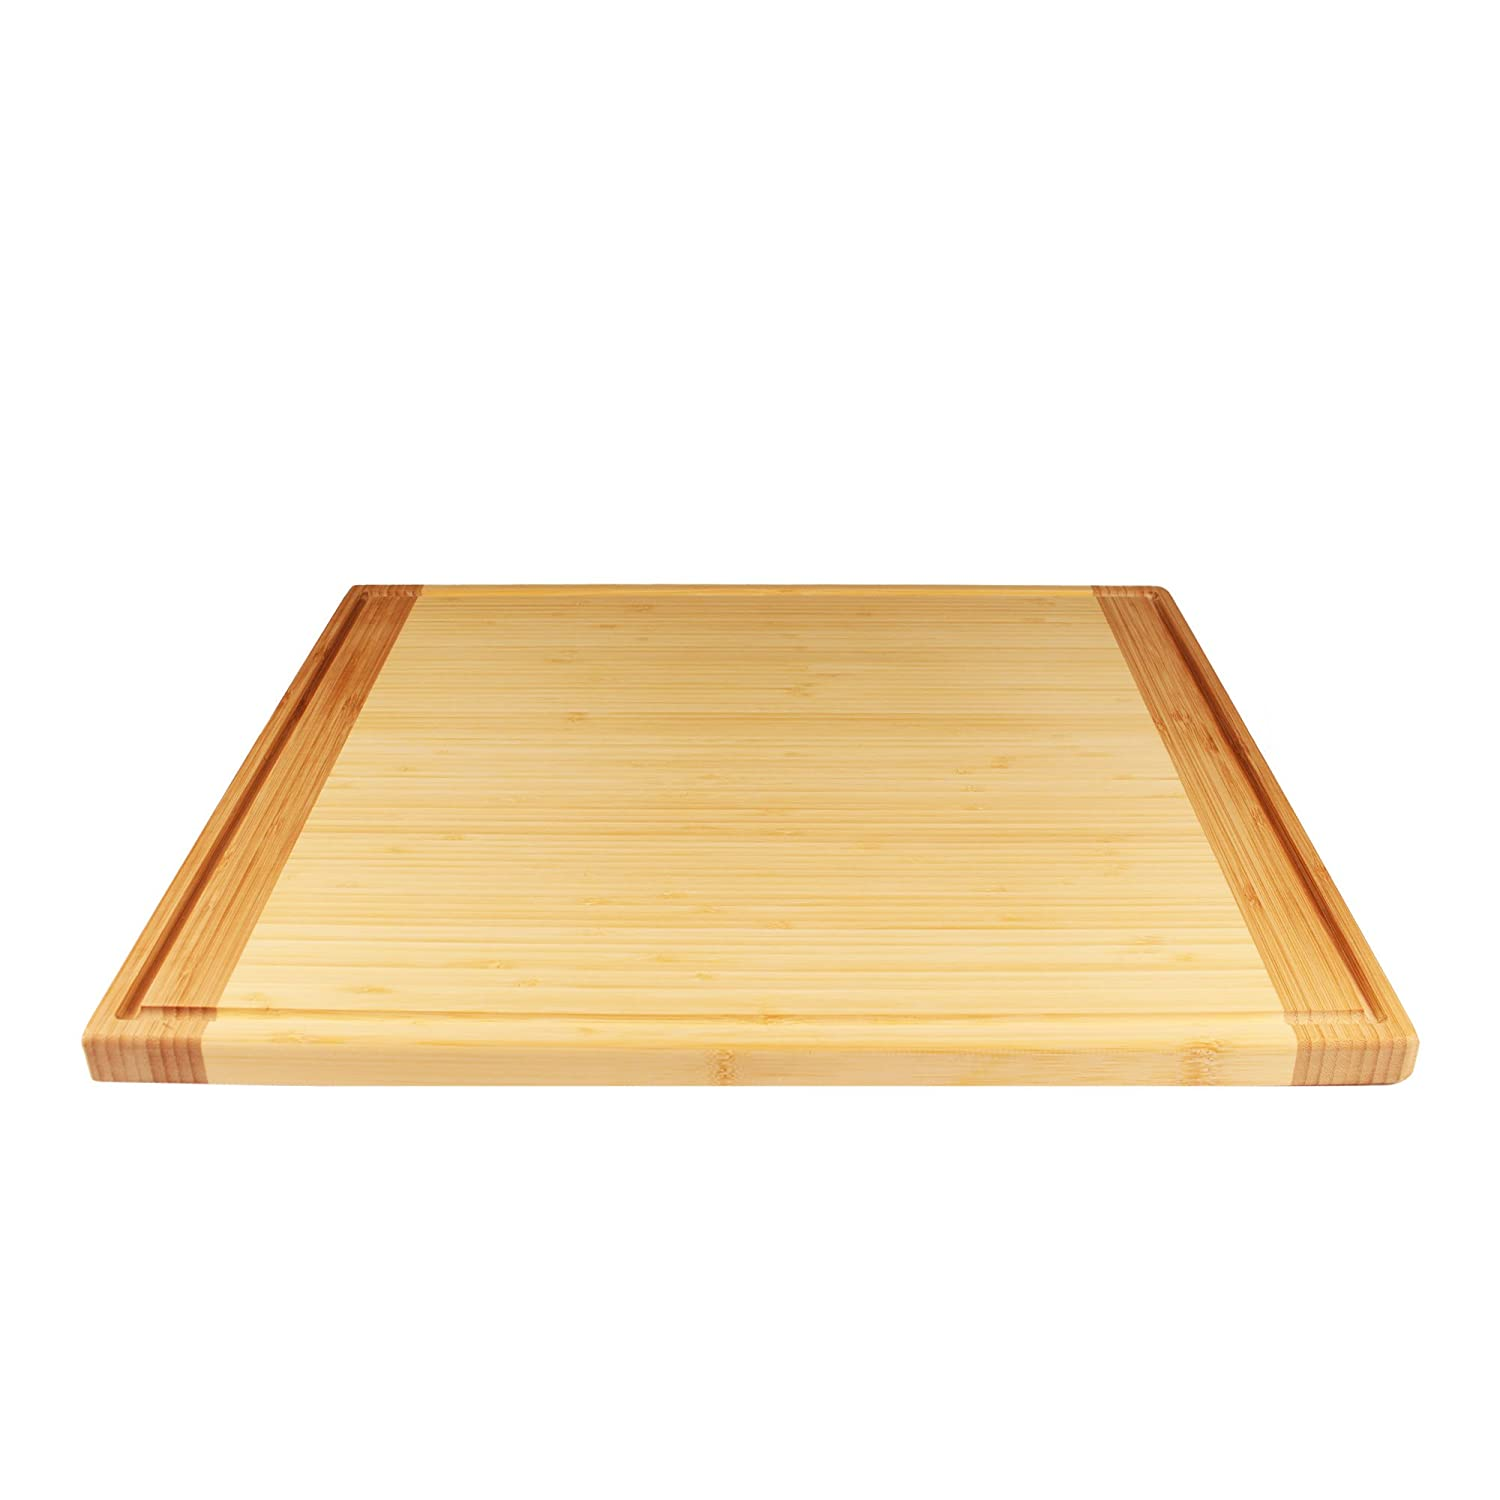 """BambooMN Universal Premium Pull Out Cutting Boards - Under Counter Replacement - Designed To Fit Standard Slots Heavy Duty Kitchen Board with Juice Groove - 20"""" x 14"""" x 0.75"""" - 1 Piece"""